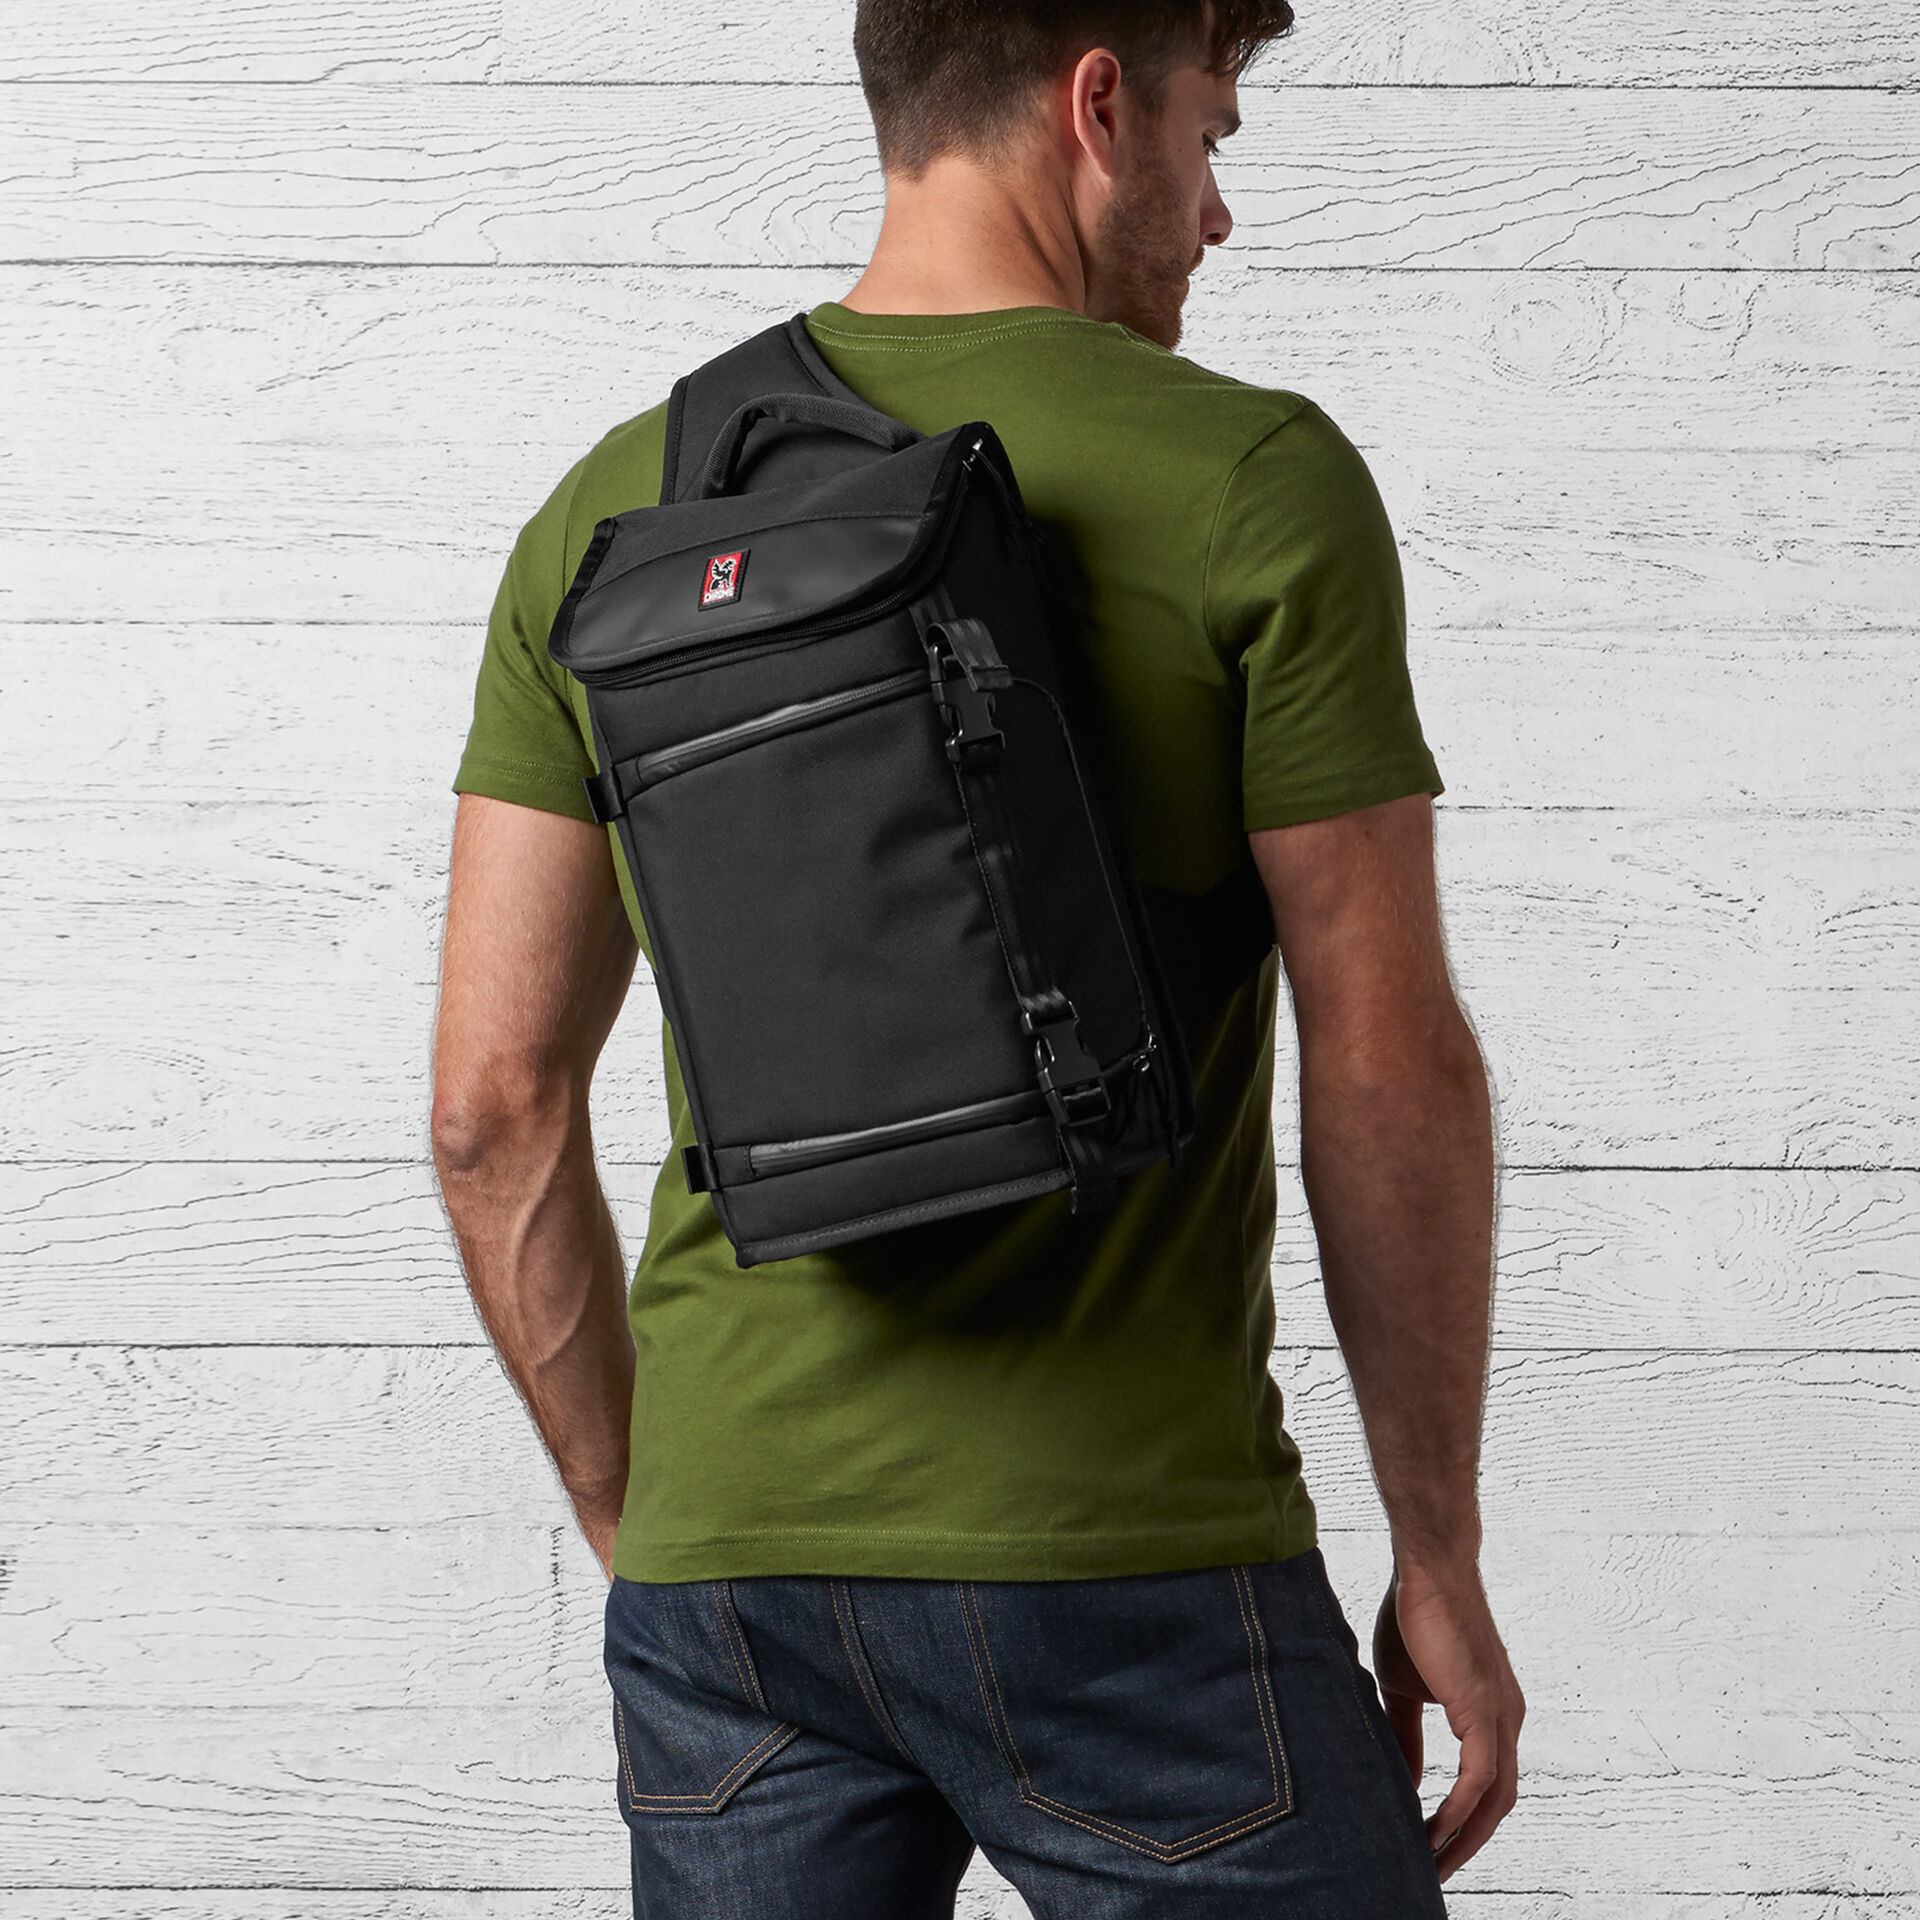 Niko Messenger Bag in Black / Black - wide view.